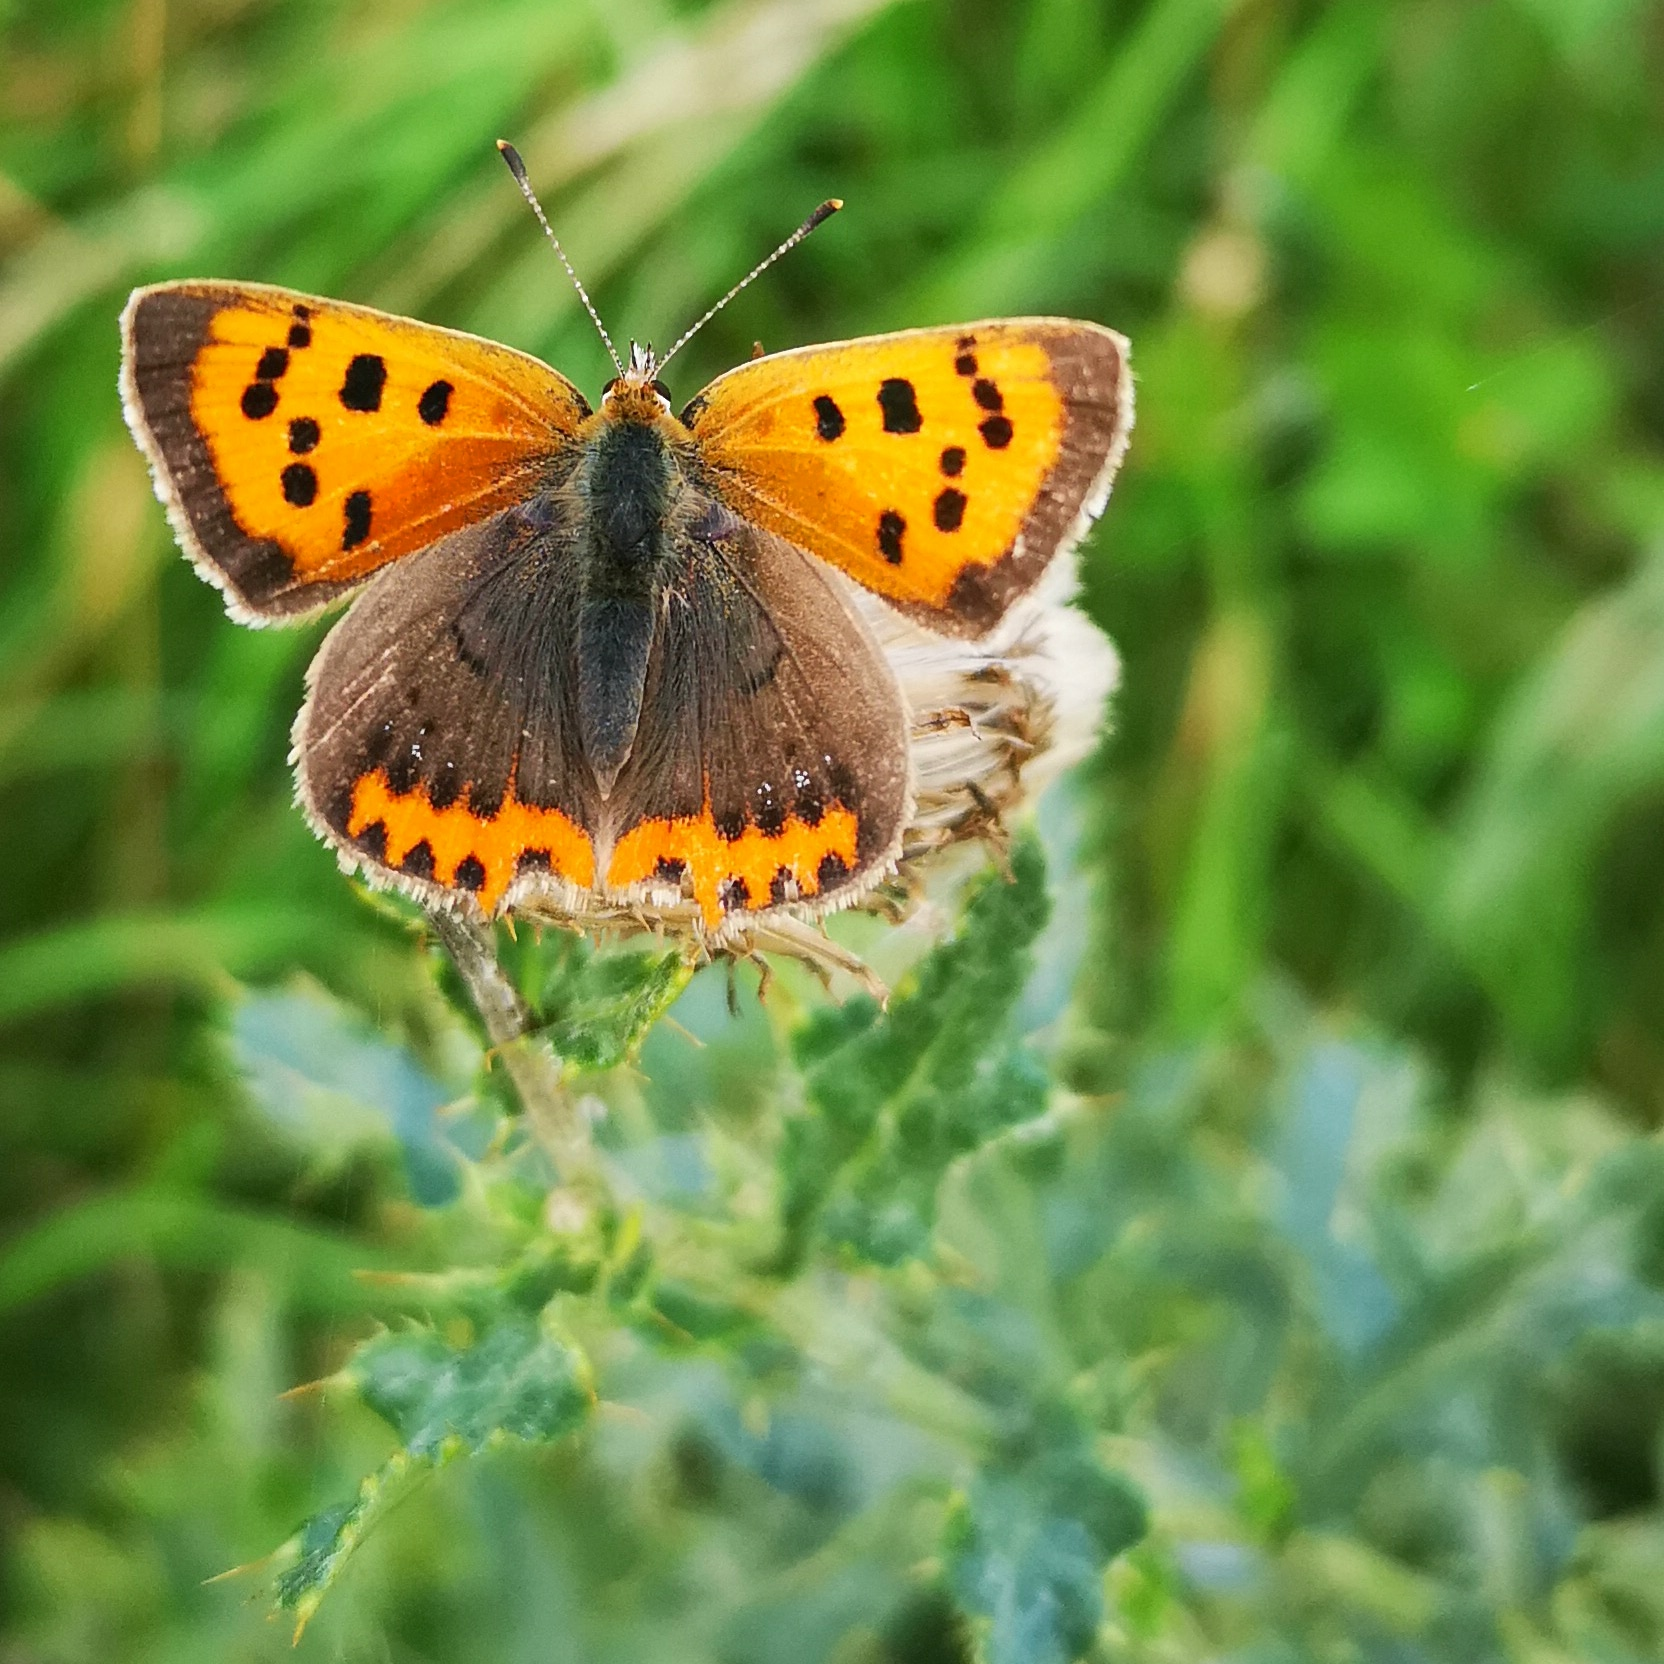 Small copper butterfly - orange with black spots.